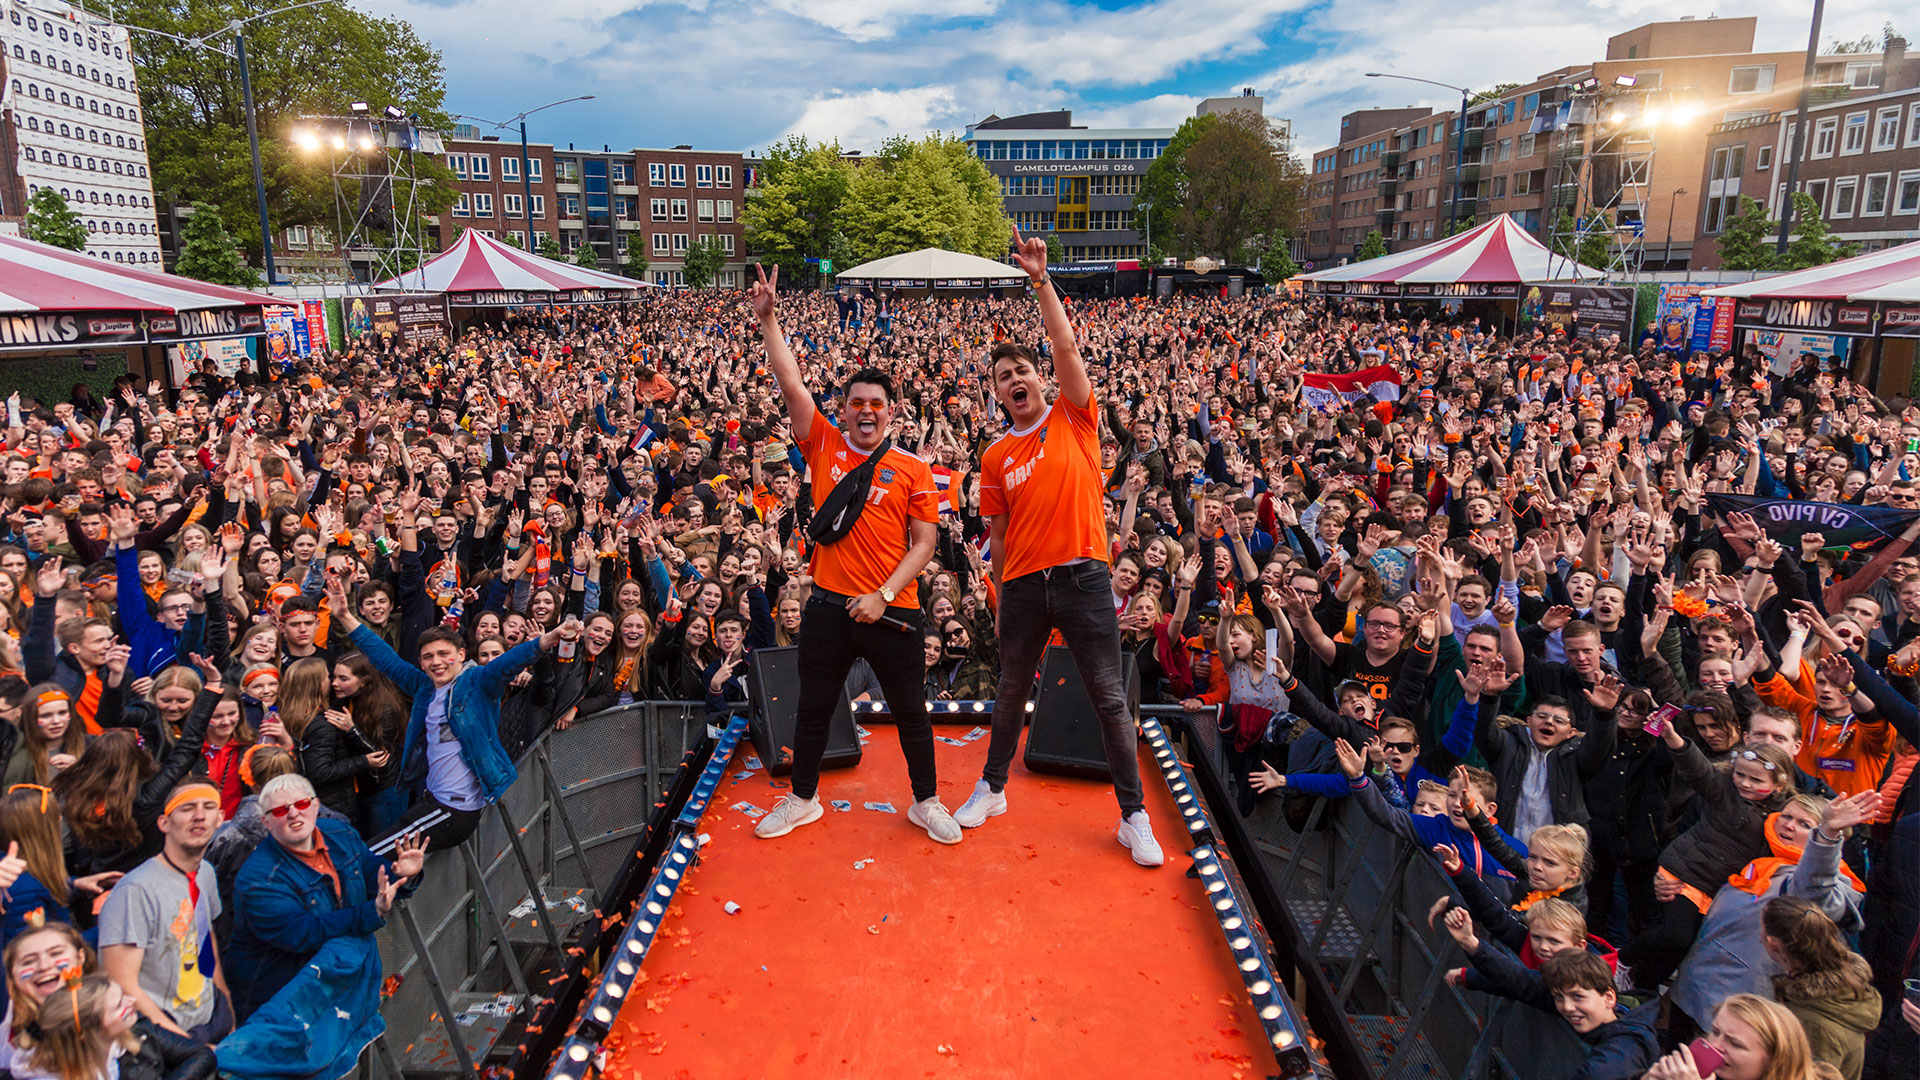 Feestnation_background-foto-1_2019_De-partyact-van-het-jaar